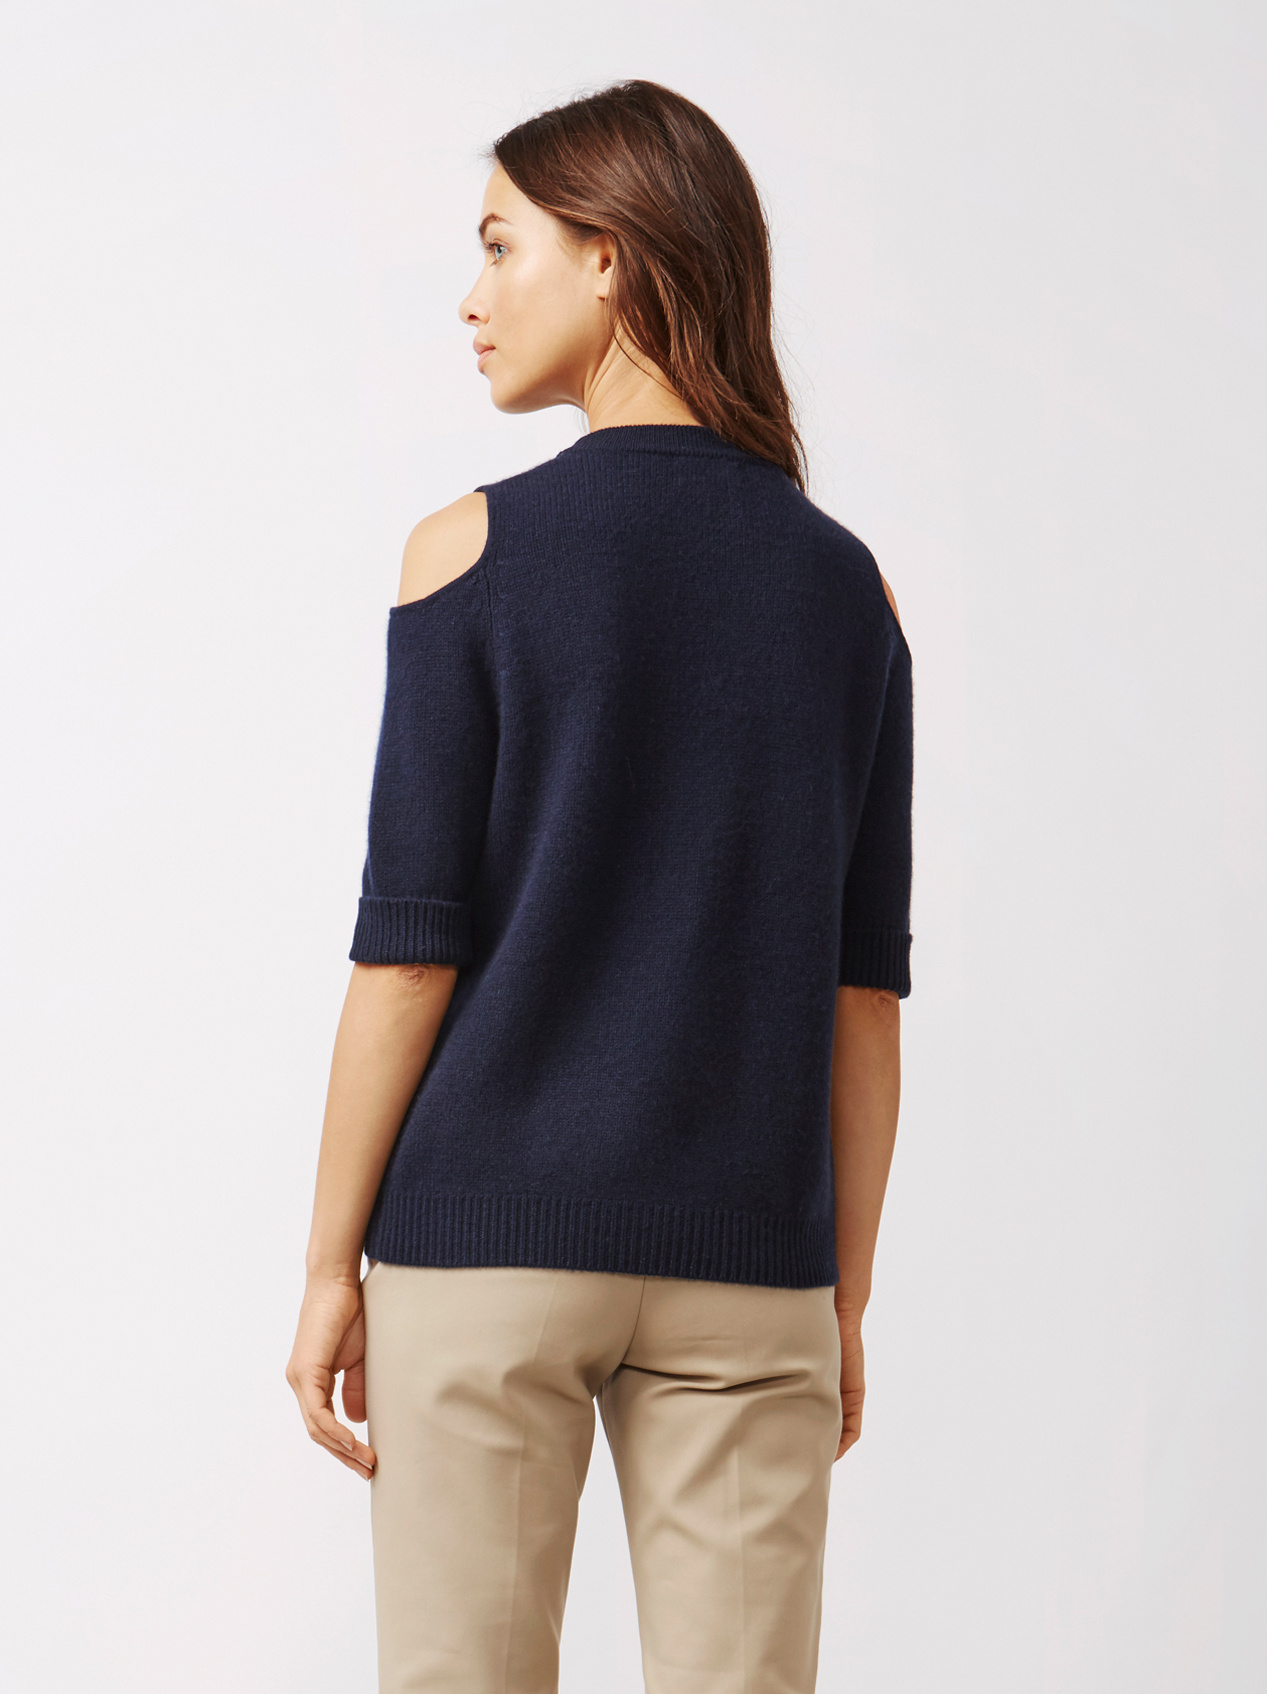 Soft Goat Women's Cold Shoulder Sweater Navy